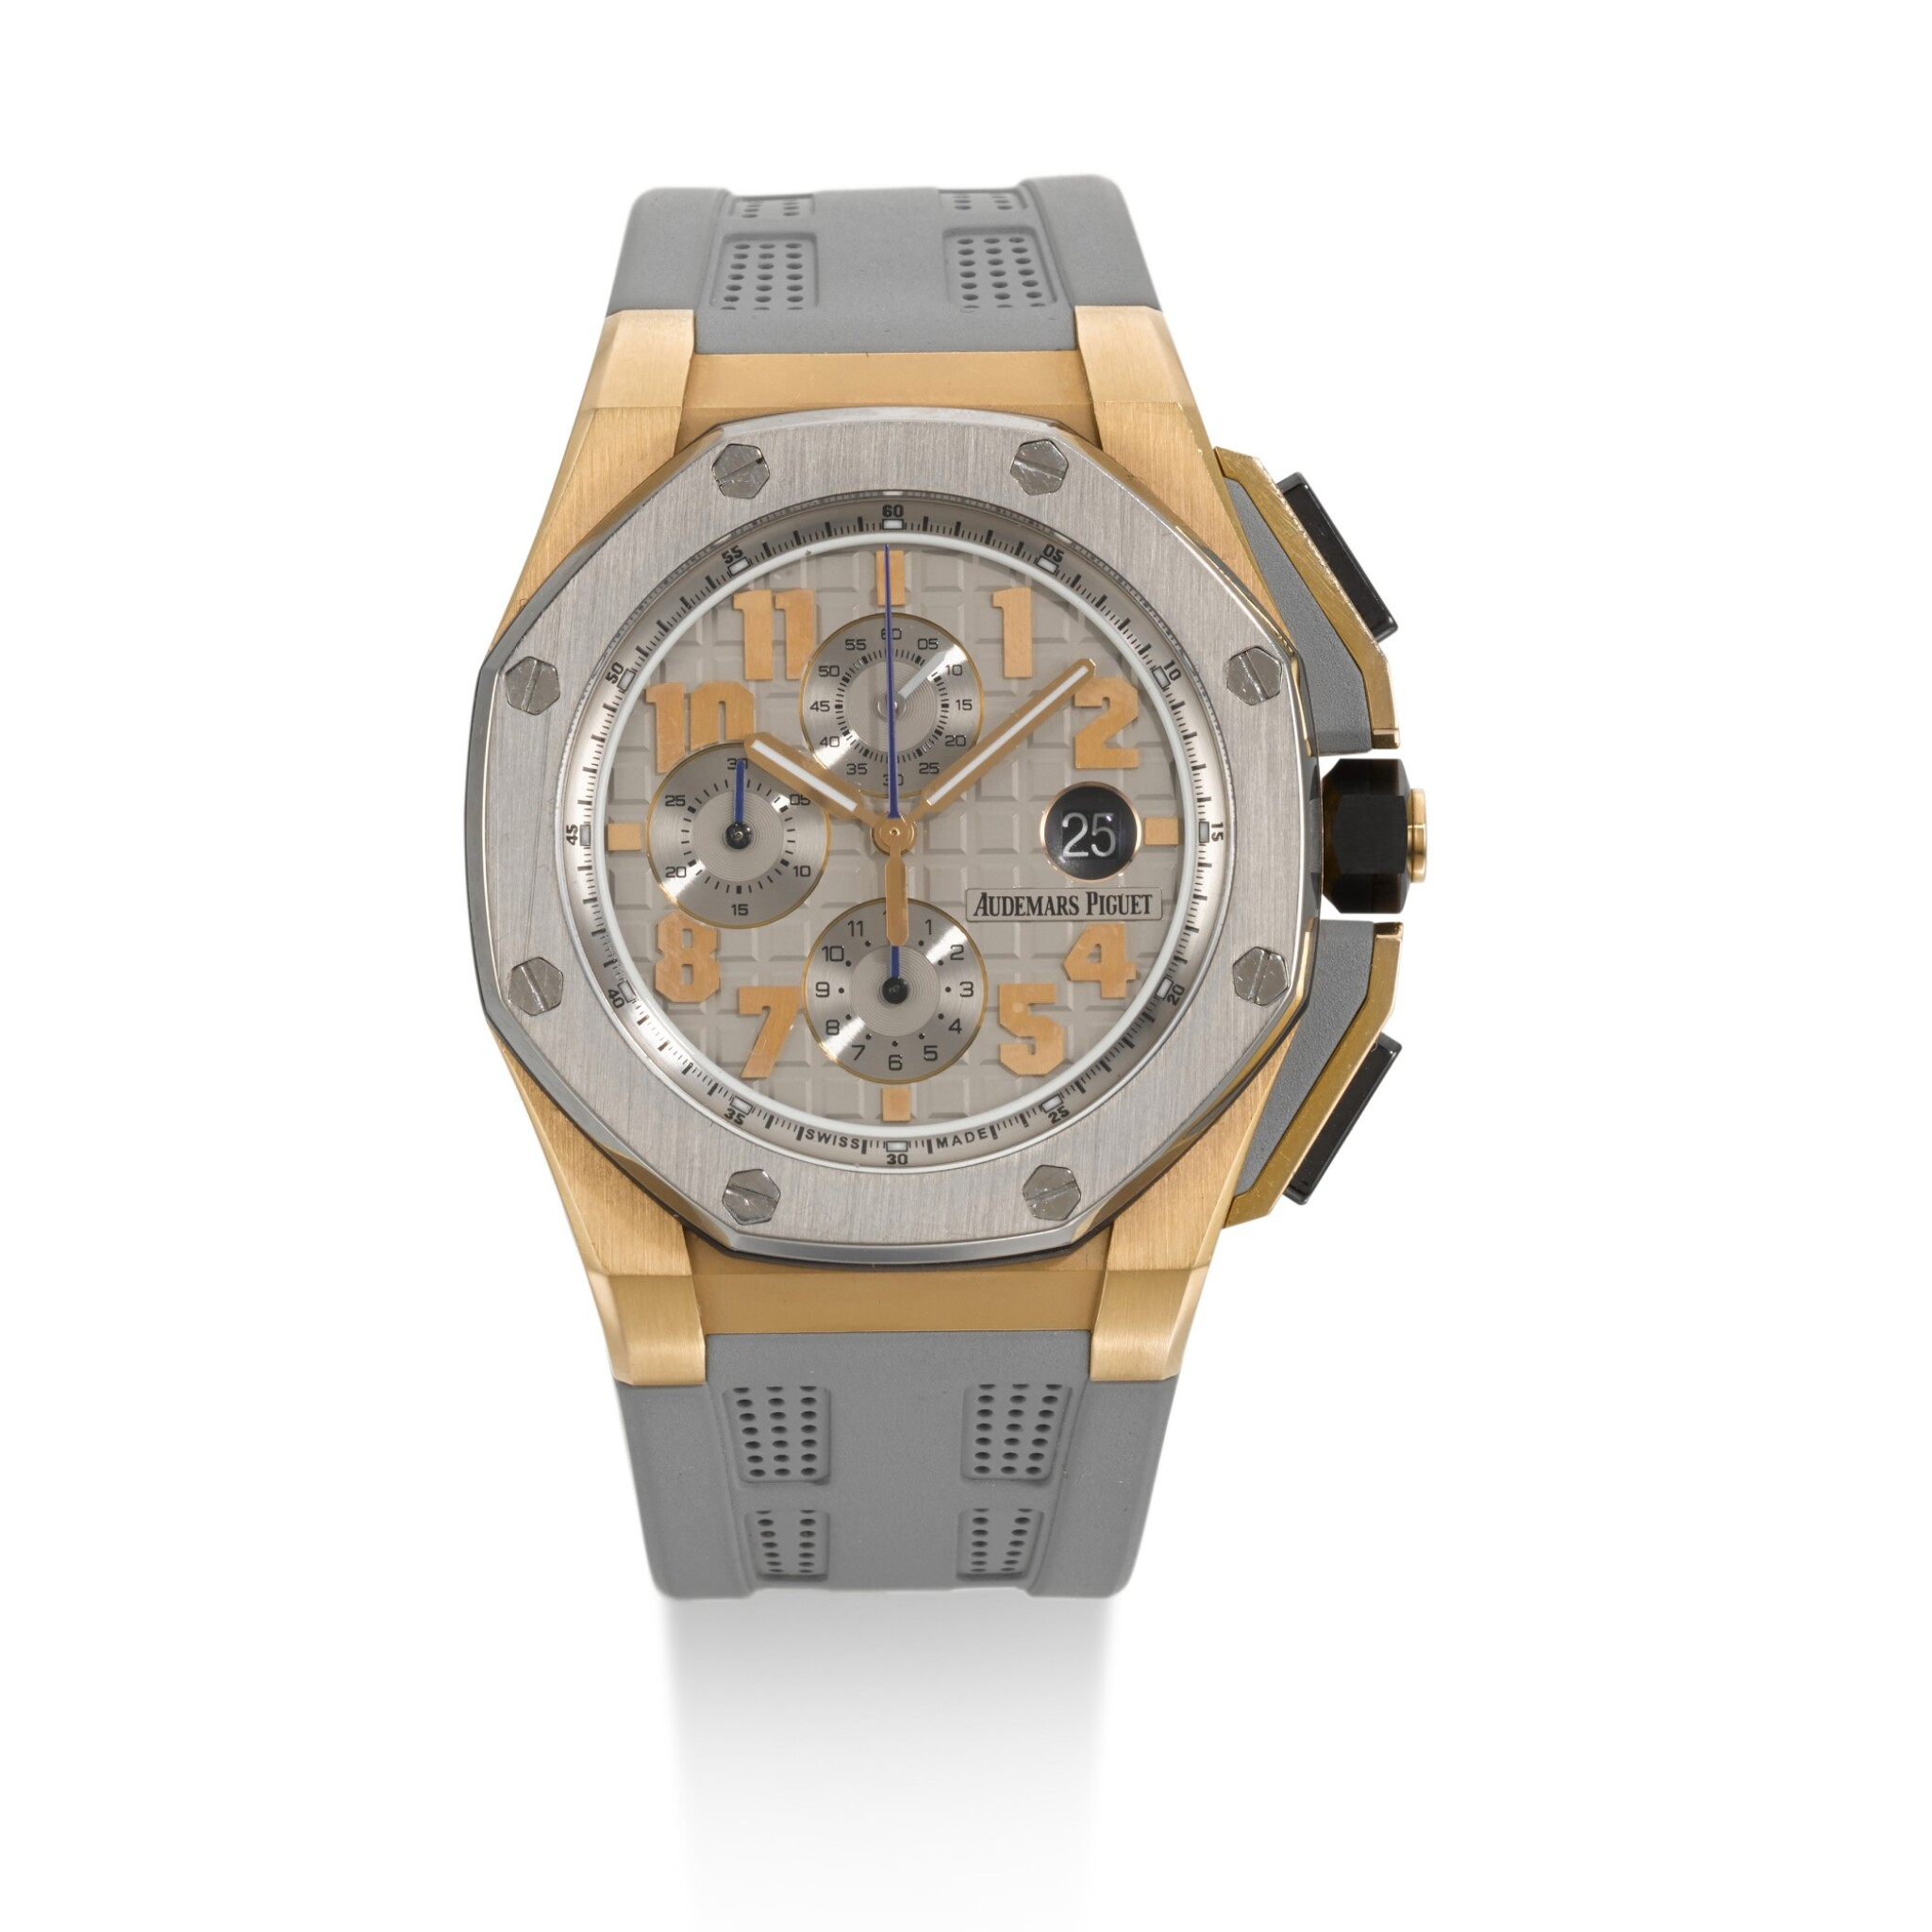 View full screen - View 1 of Lot 325. AUDEMARS PIGUET | ROYAL OAK OFFSHORE LEBRON JAMES, REFERENCE 26210OI.00.A109CR.01, LIMITED EDITION PINK GOLD AND TITANIUM CHRONOGRAPH WRISTWATCH WITH DATE, NUMBER 483/600 CIRCA 2013.